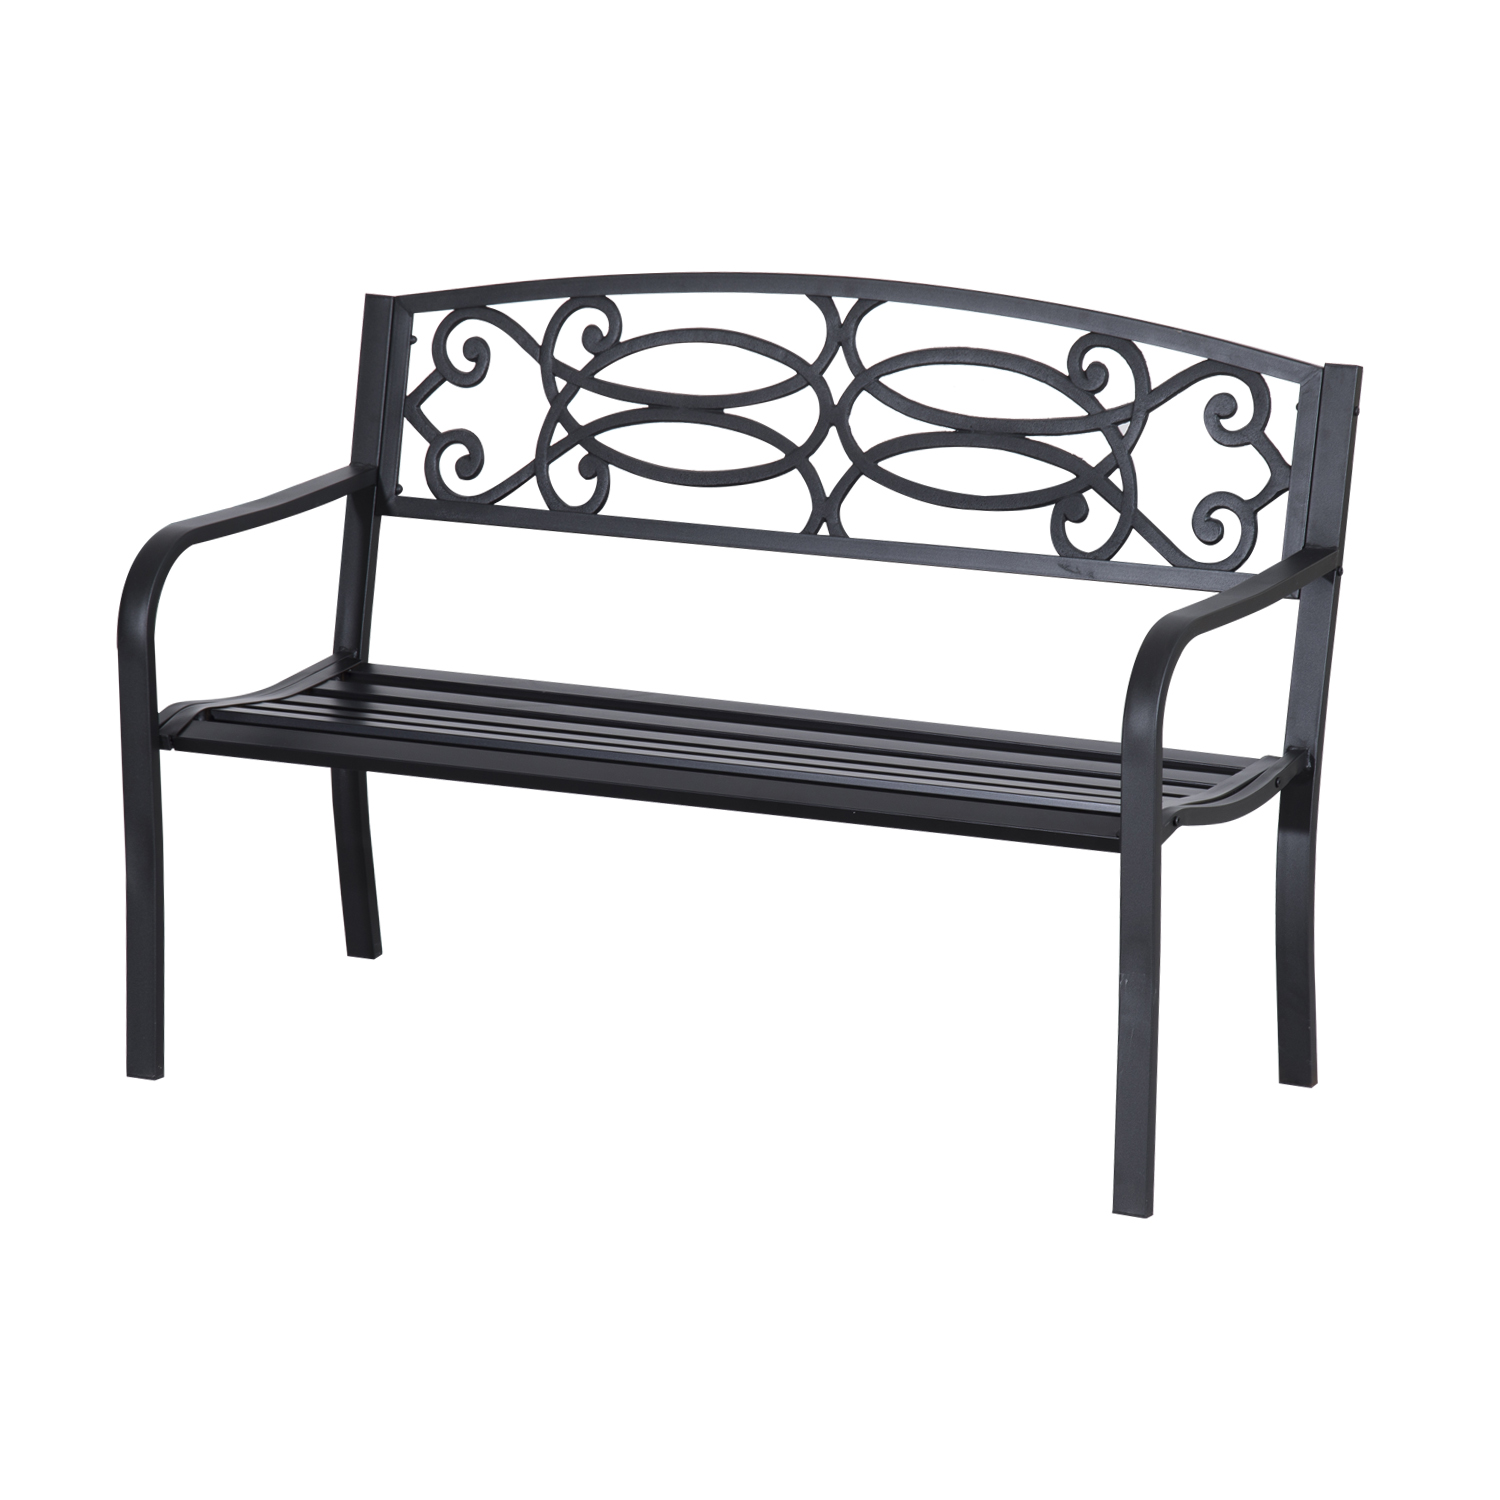 """Outsunny 50"""" Flowering Pattern Decorative Patio Garden Bench"""